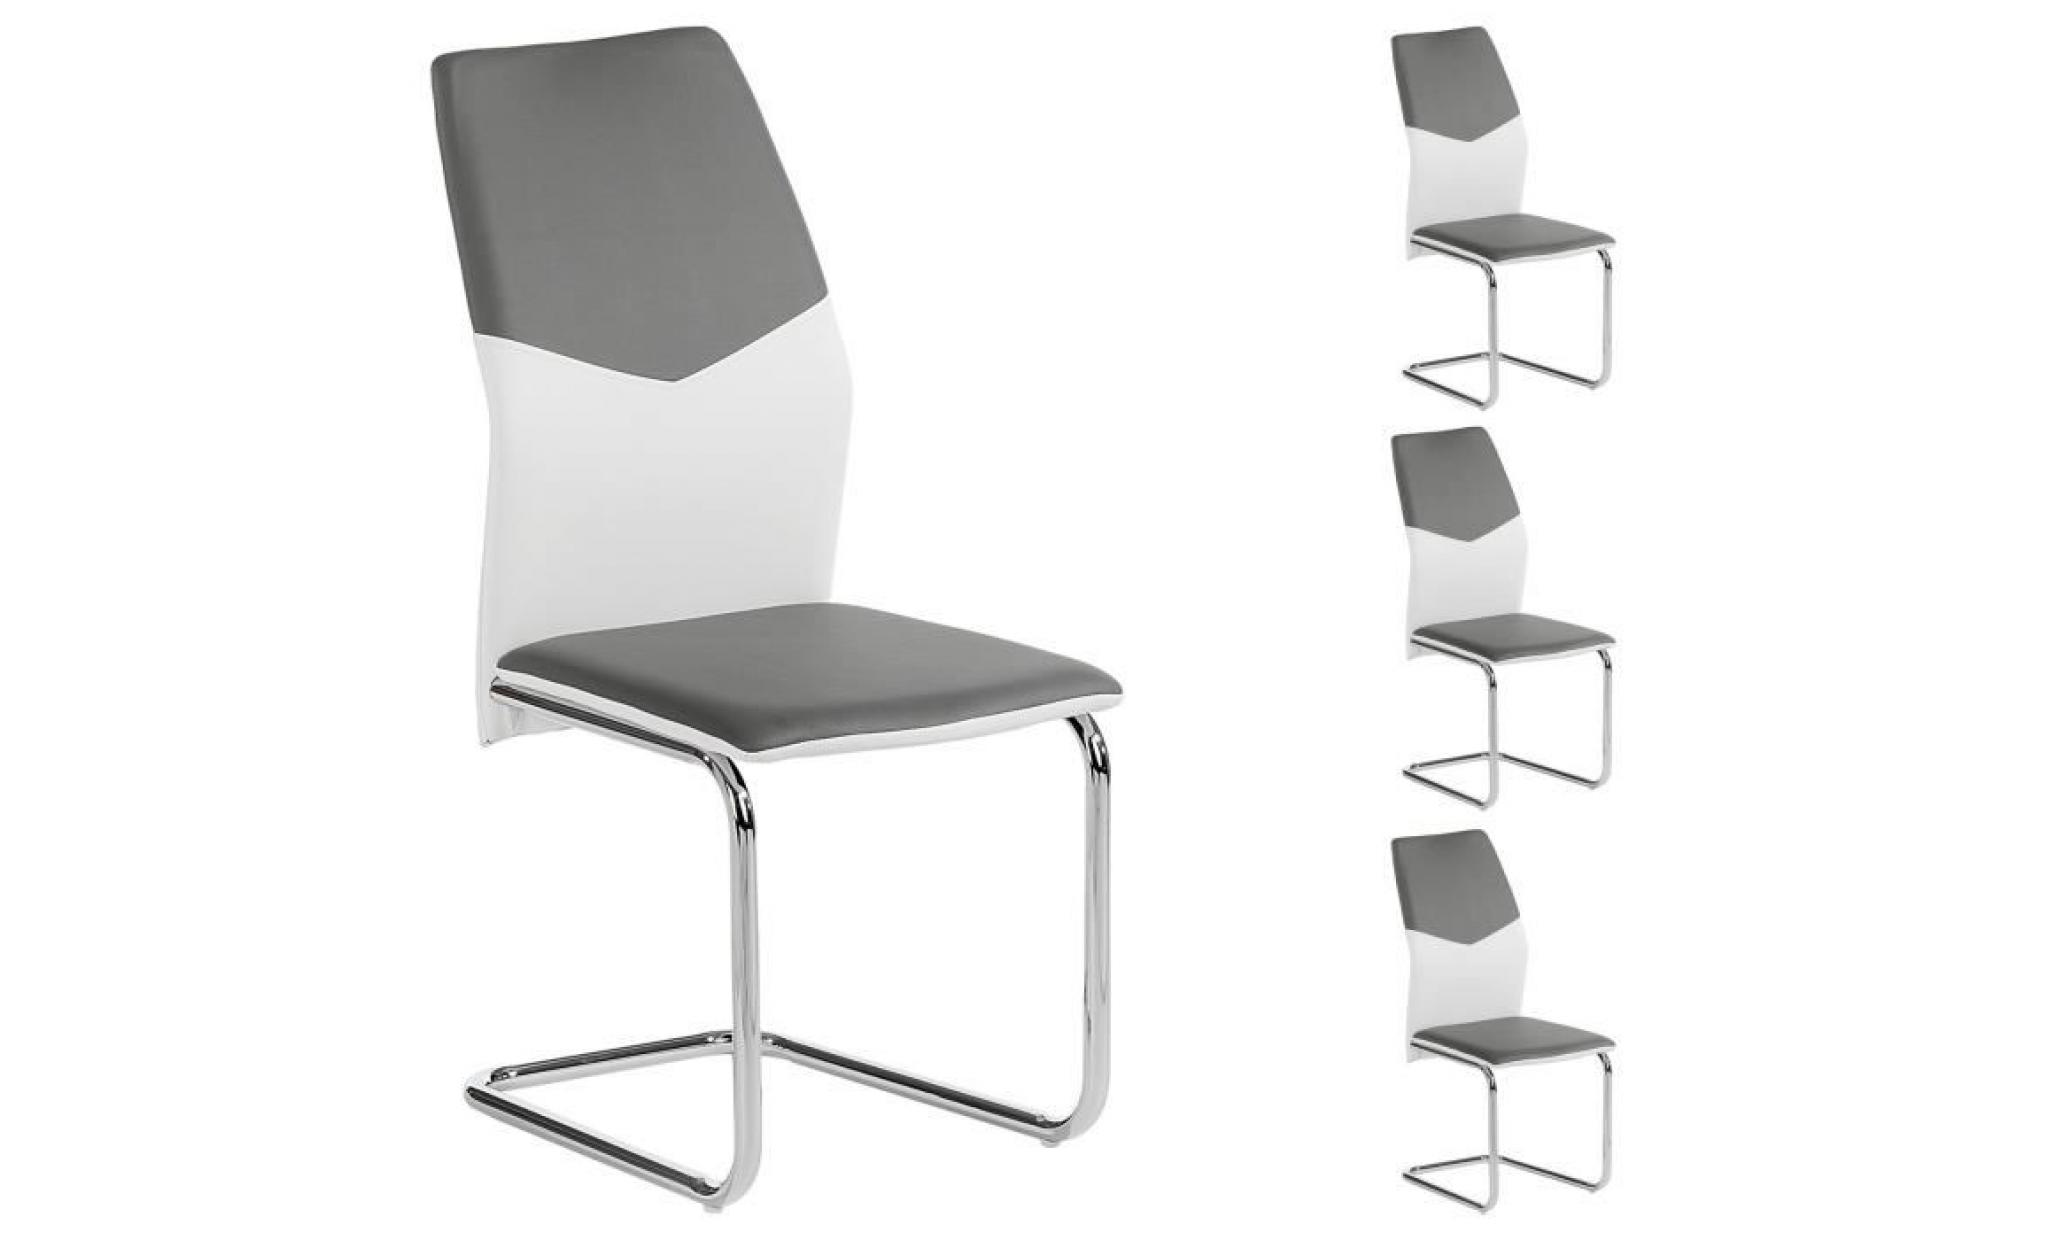 lot de 4 chaises leona pu blanc gris achat vente chaise salle a manger pas cher couleur et. Black Bedroom Furniture Sets. Home Design Ideas